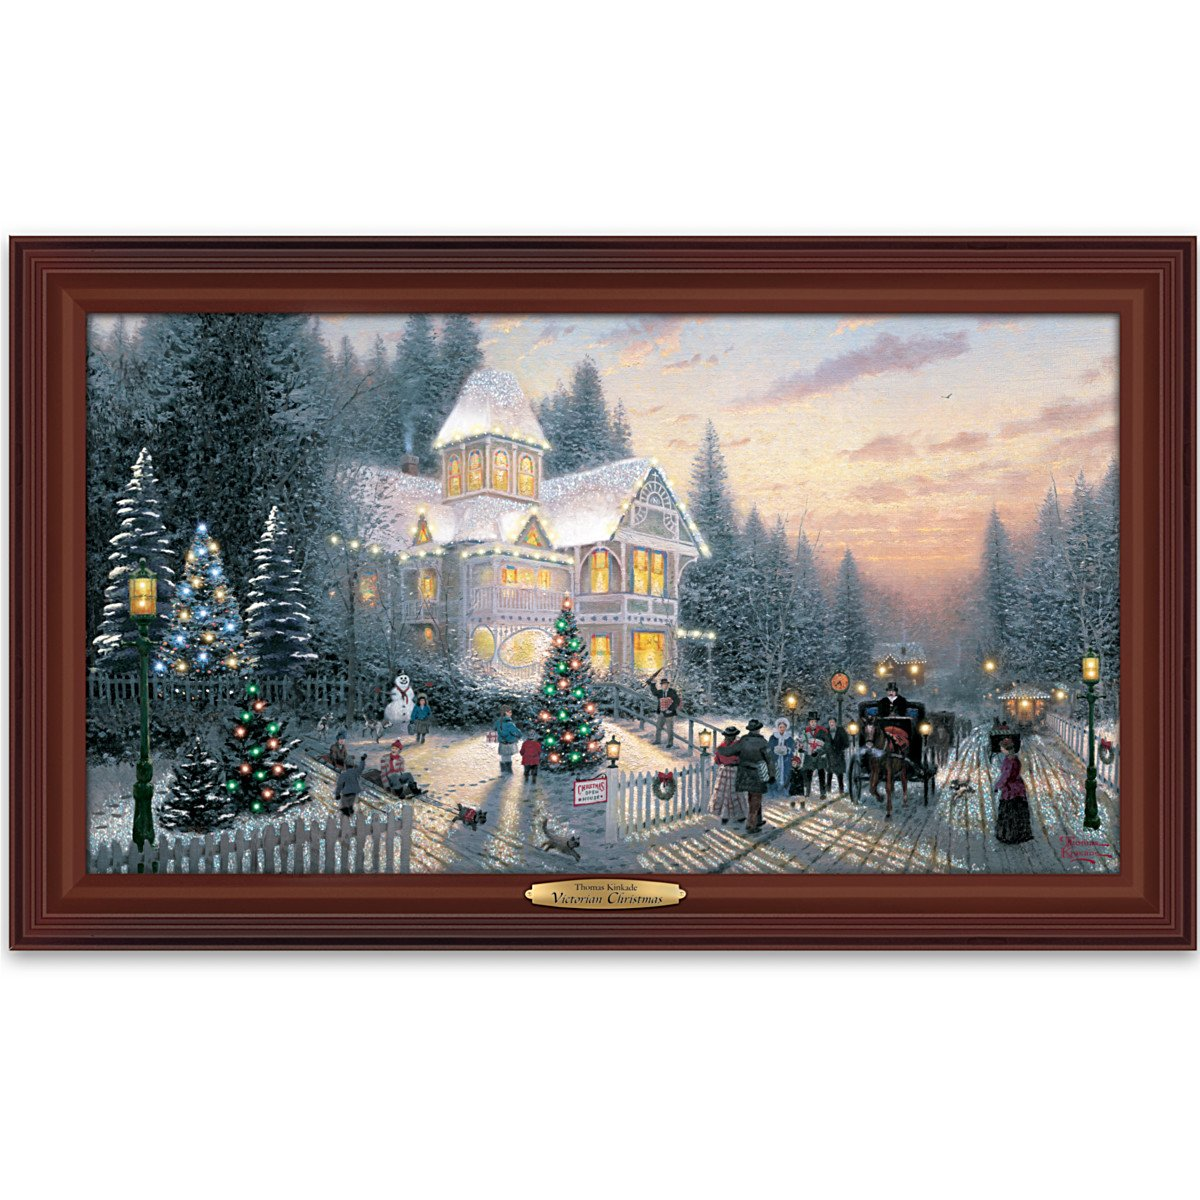 Amazon.com: Wall Decor: Thomas Kinkade Victorian Christmas Wall ...